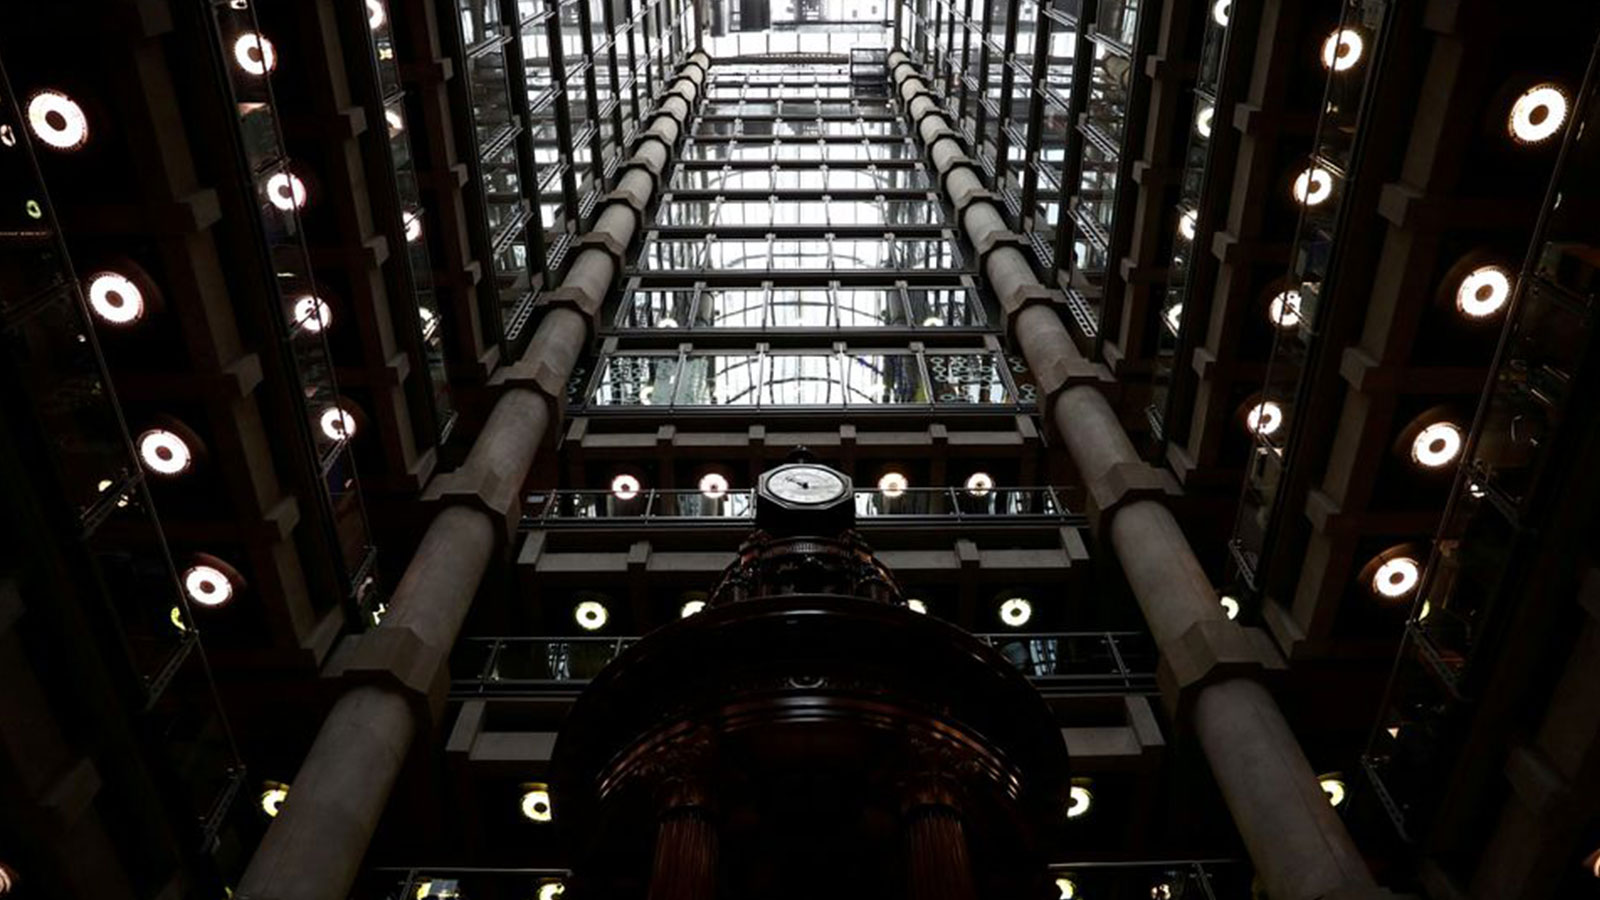 The interior of the Lloyd's of London building is seen in the City of London financial district in London, Britain, April 16, 2019.